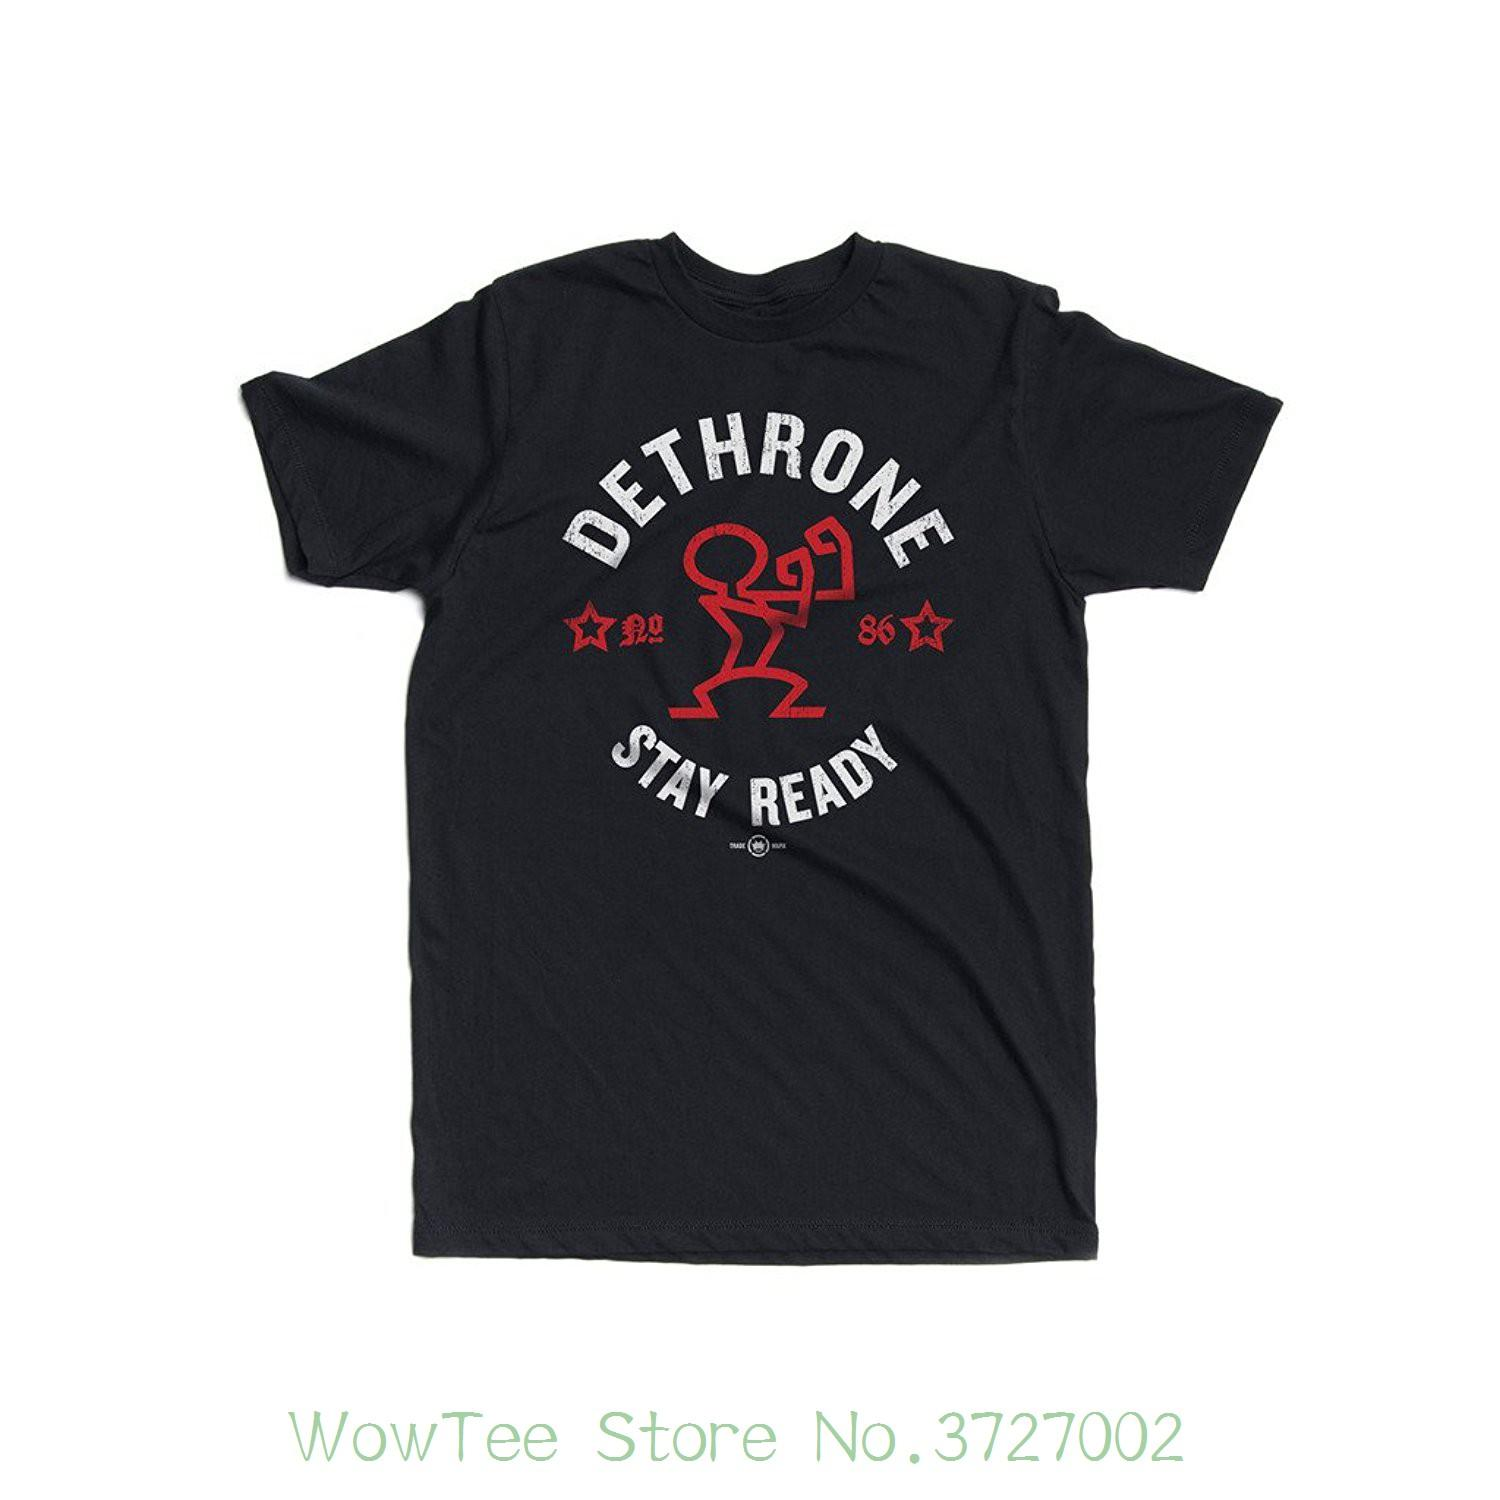 Men's Clothing 2019 Fashion Conor Mcgregor Dublin Walk Out T Shirt Men Brand Quality Cotton Short Sleeve Man T-shirt Top Keep You Fit All The Time